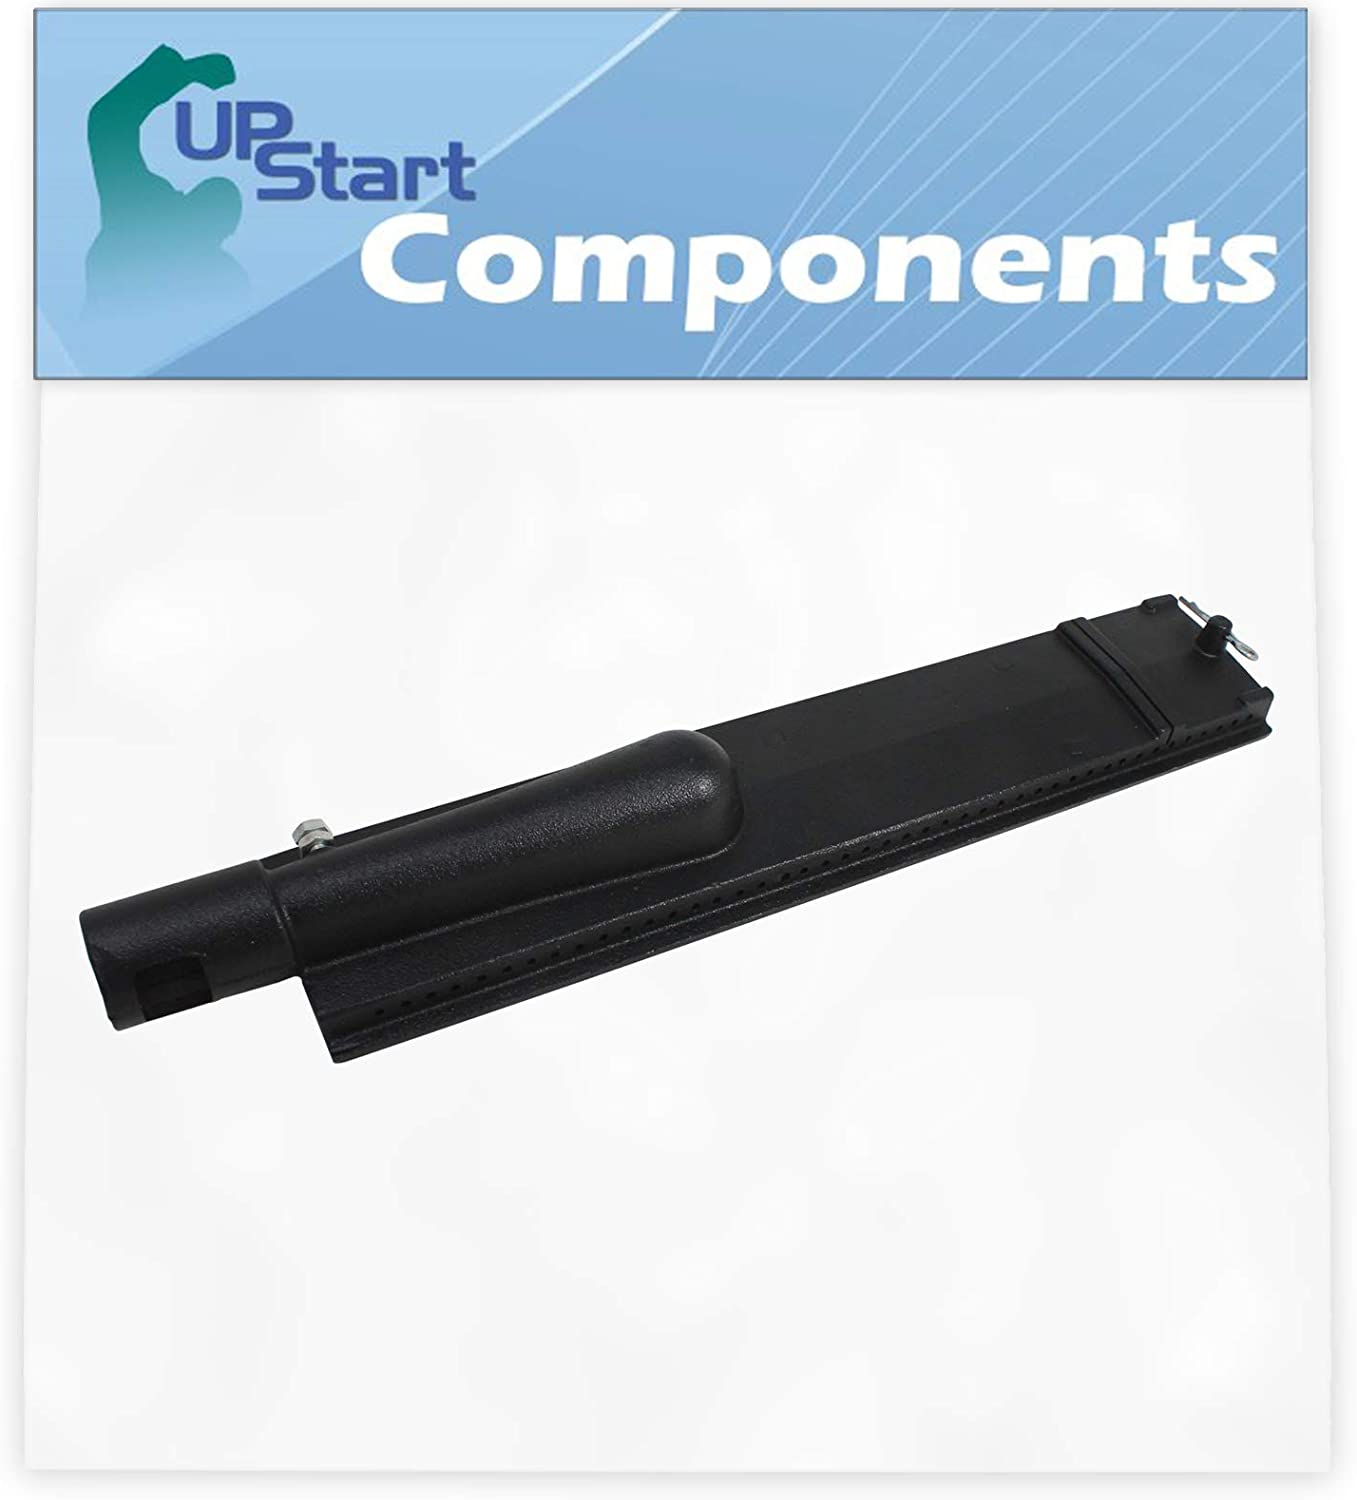 UpStart Components BBQ Gas Grill Burner Popular standard Daily bargain sale Replacement Tube f Parts